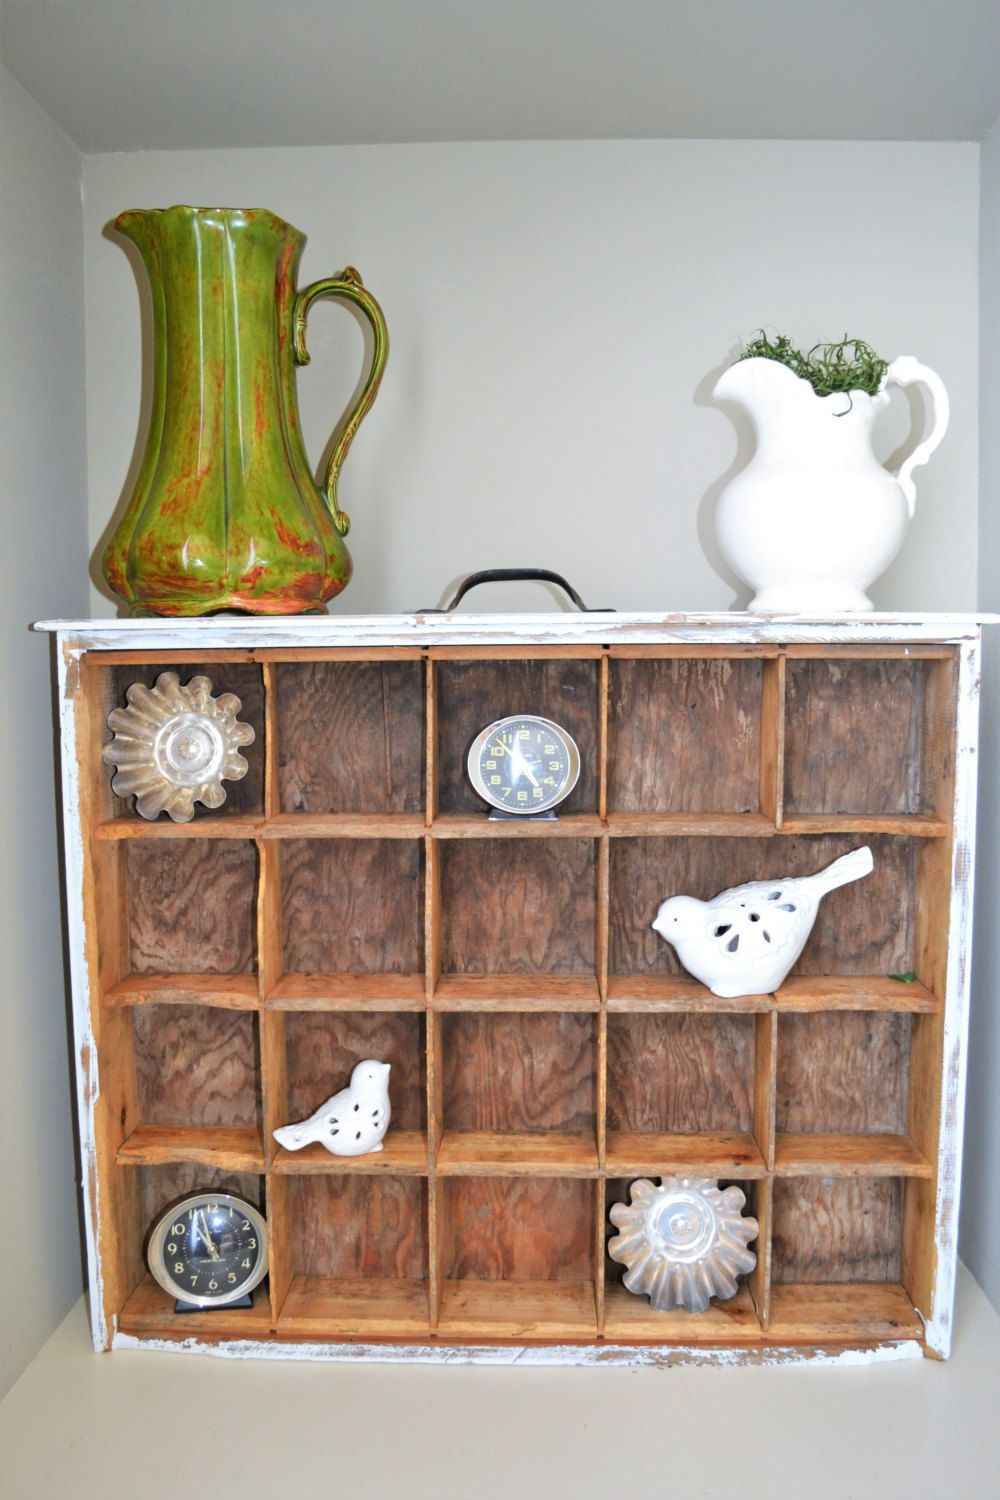 forhoja shelves hi mounted wallpaper elegant of photos drawers res with wall shelf